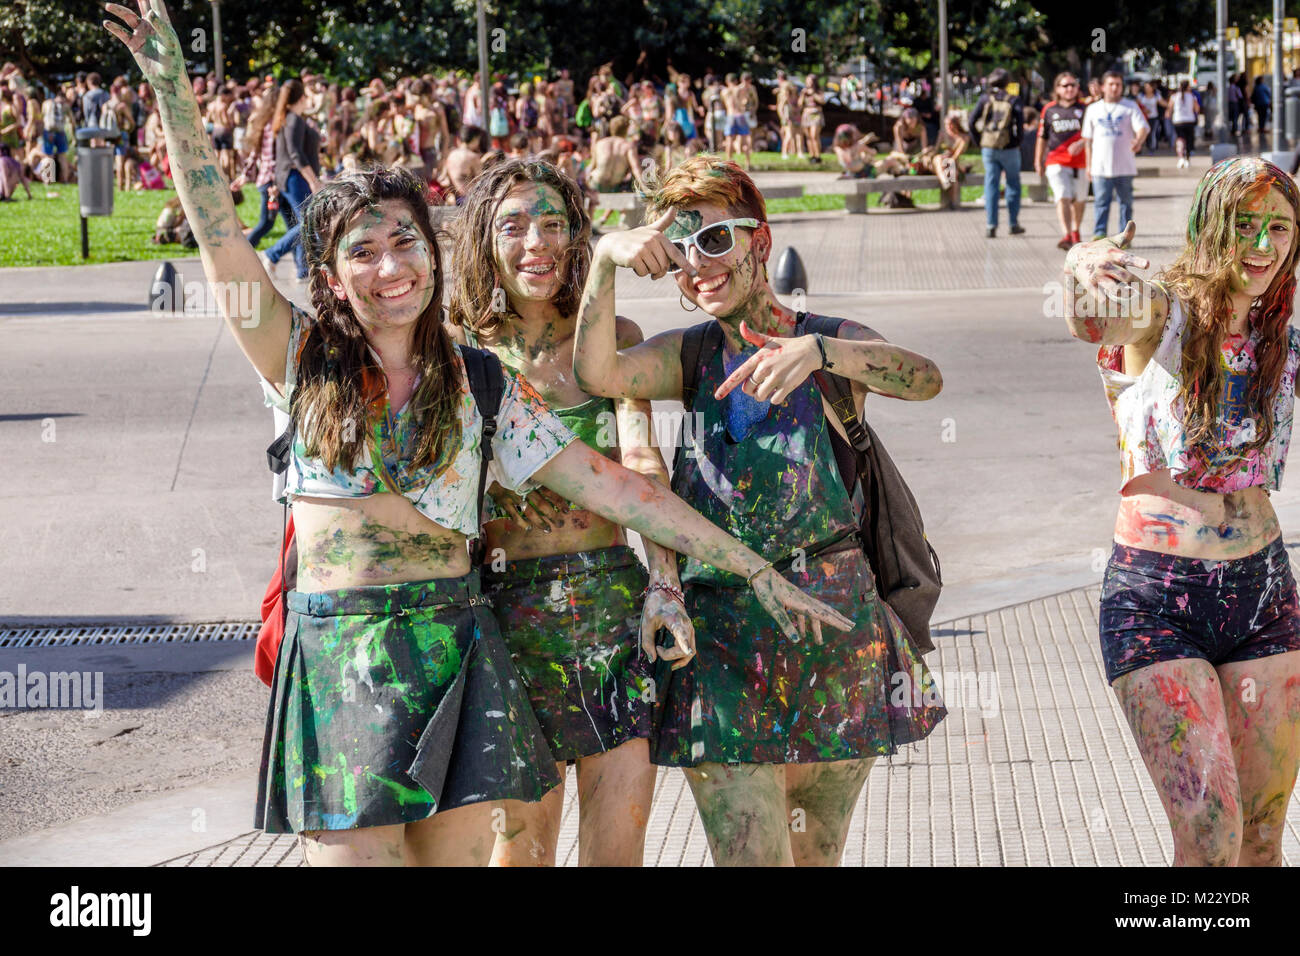 Buenos Aires Argentina Plaza Lavalle park teen girl student friends splattered body paint high school graduation - Stock Image